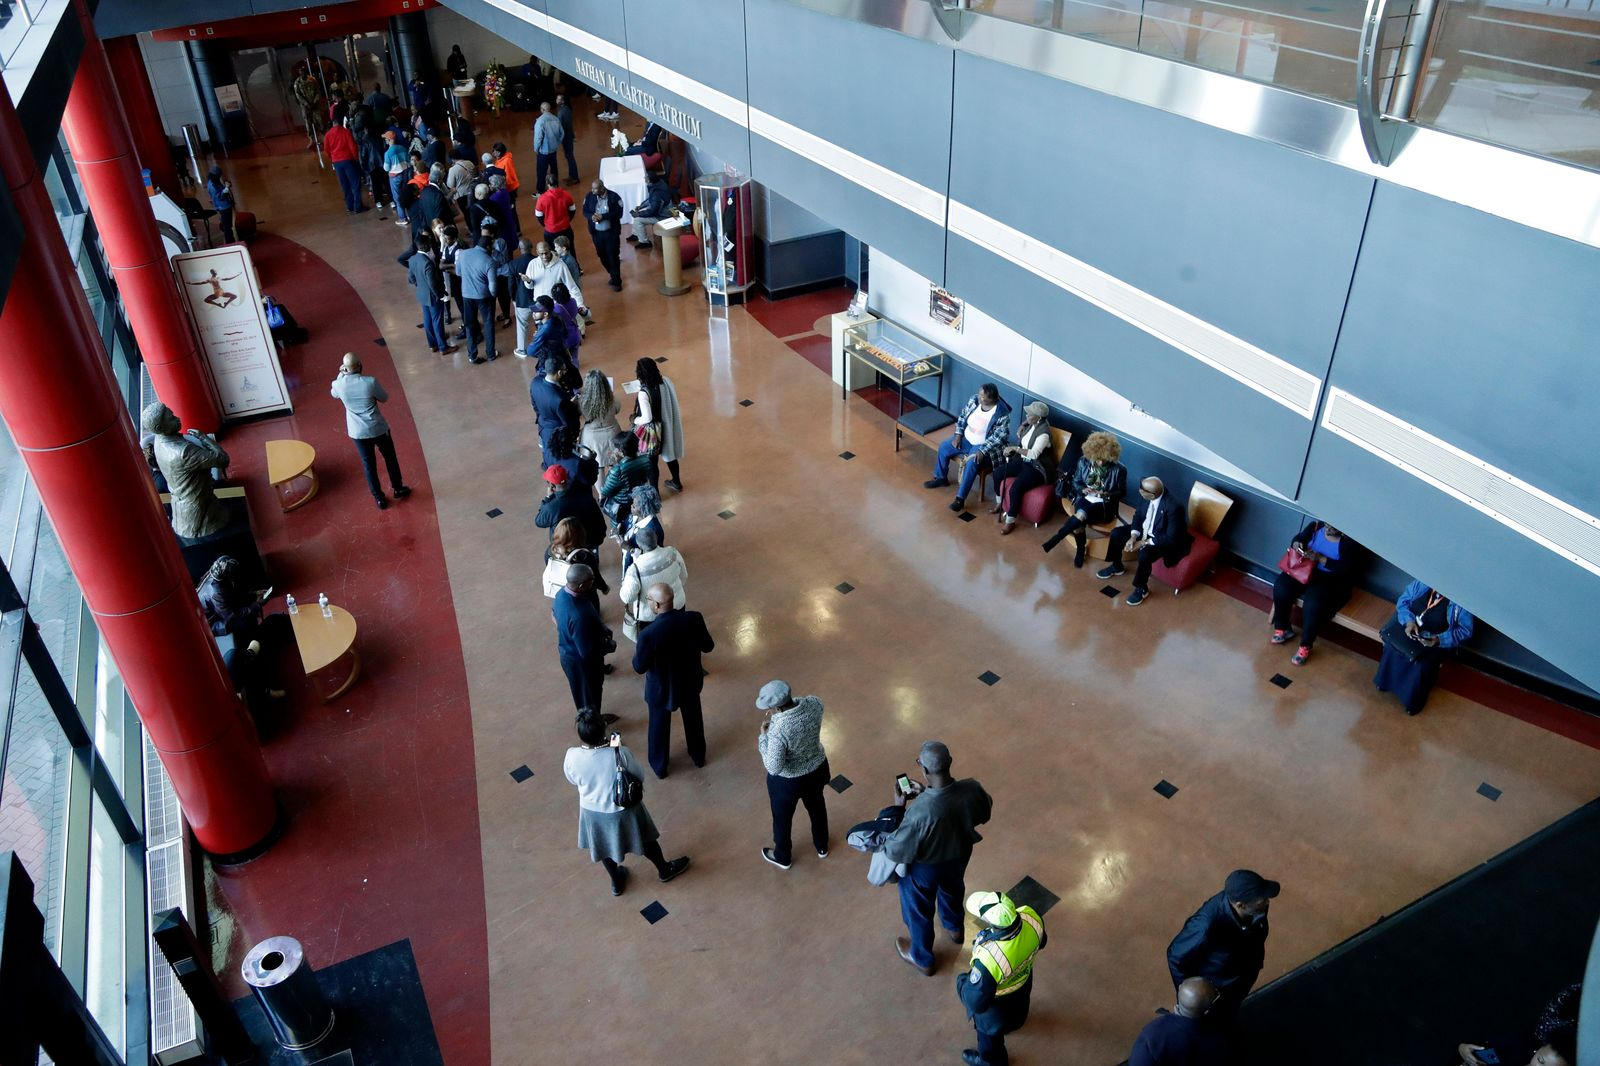 People line up outside of Gilliam Concert Hall as they wait to see the open casket of U.S. Rep. Elijah Cummings during a viewing at Morgan State University, Wednesday, Oct. 23, 2019, in Baltimore. (AP Photo/Julio Cortez)